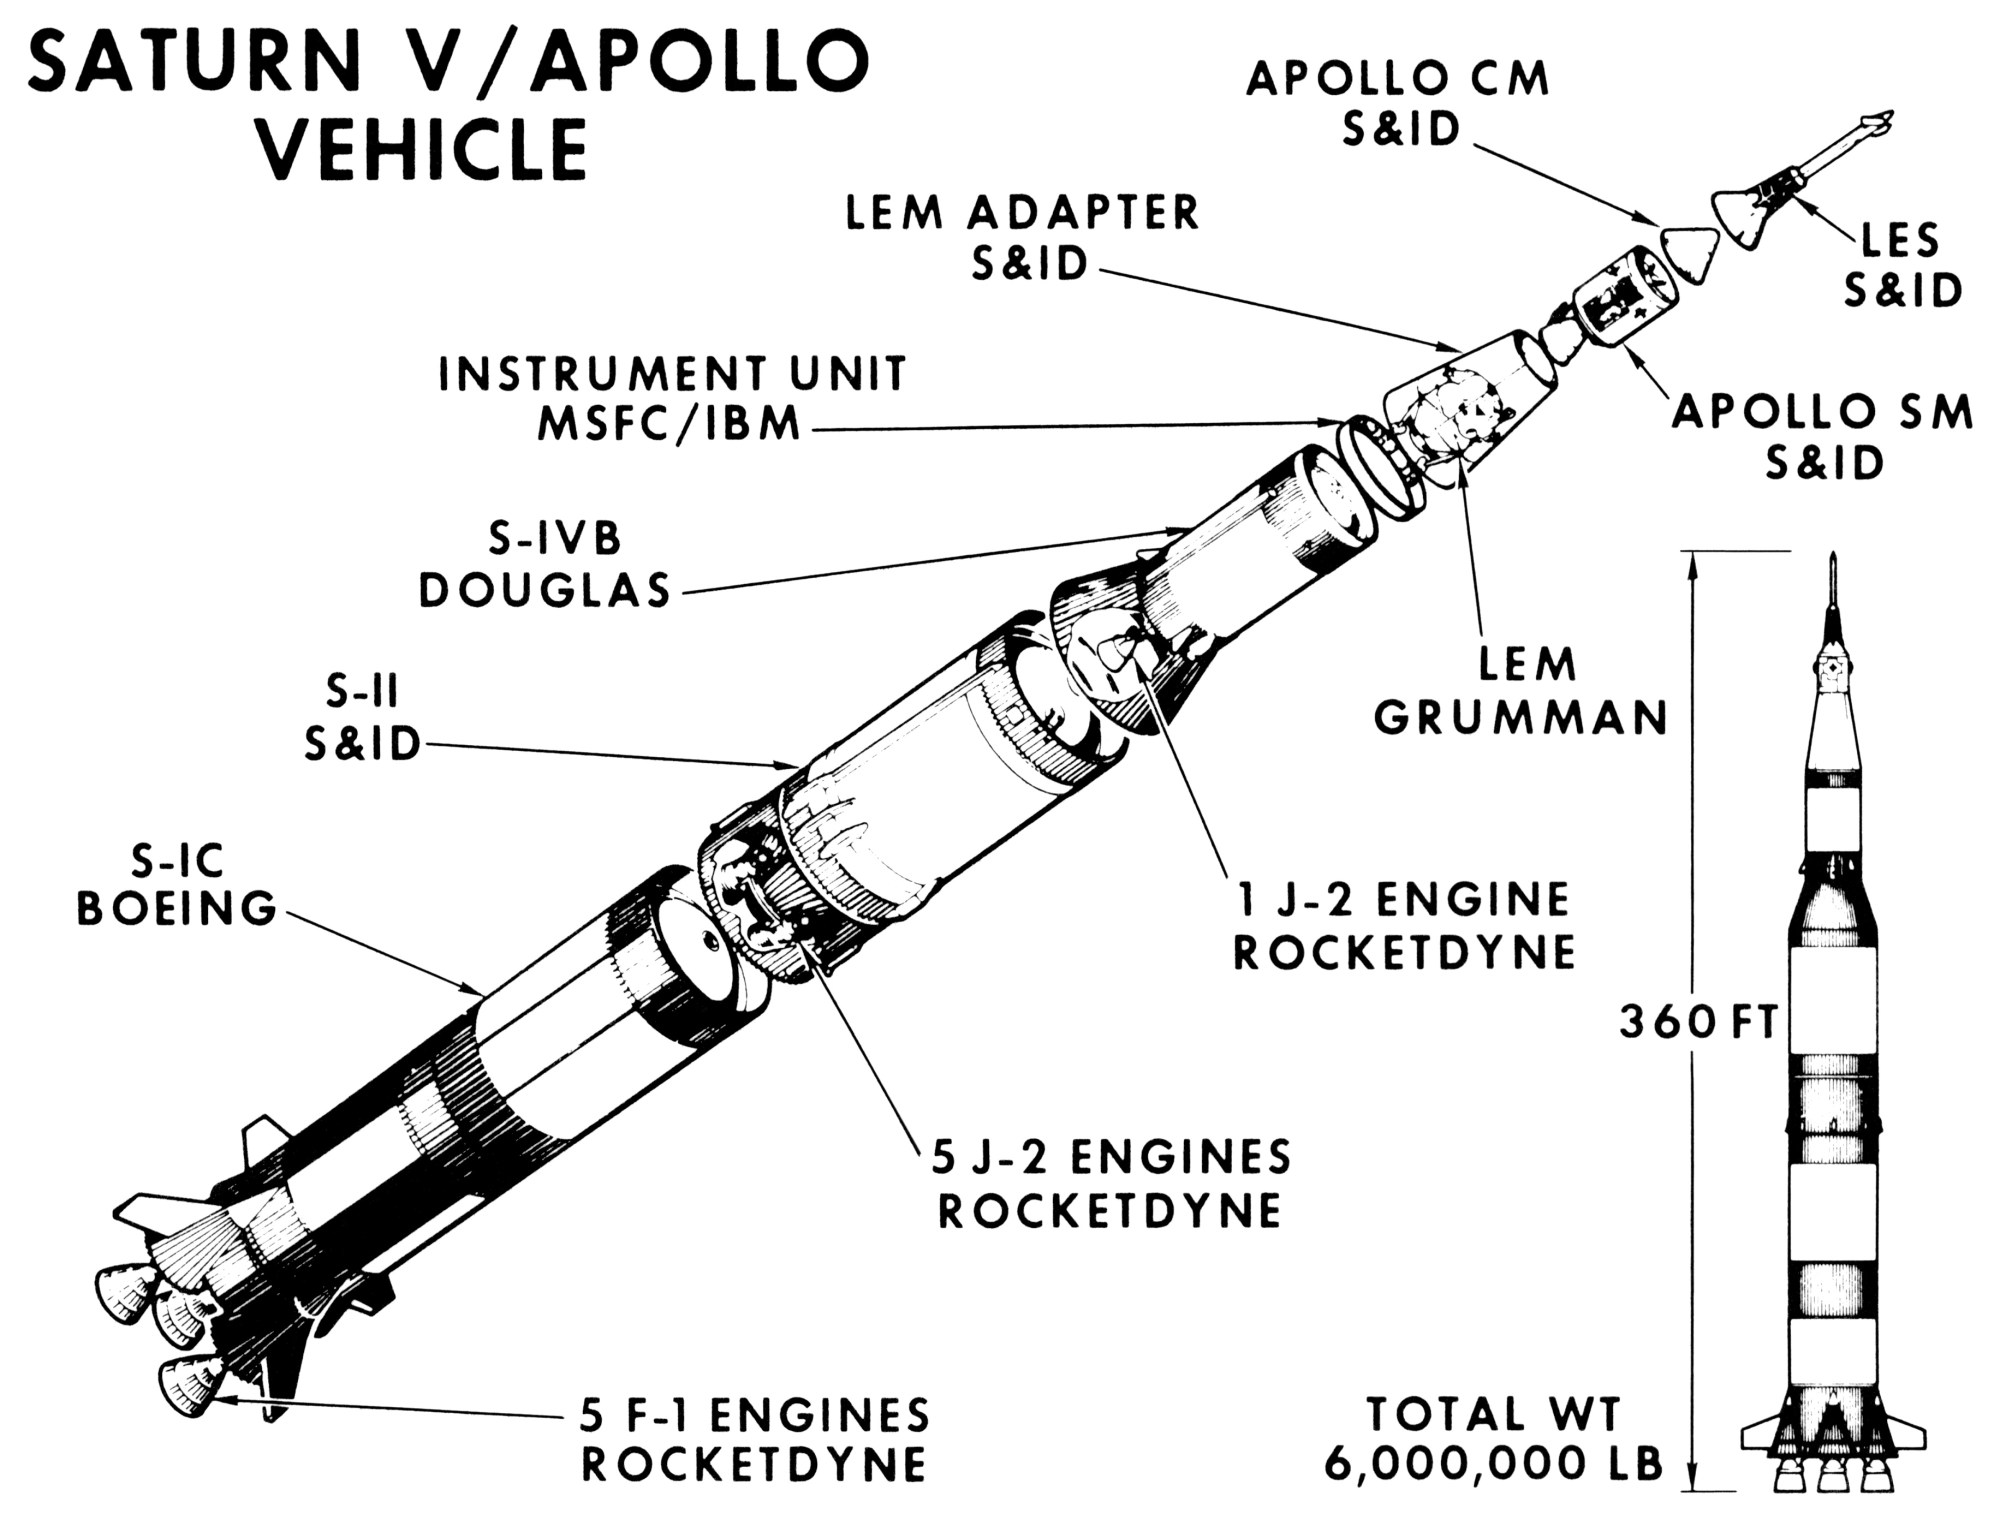 hight resolution of general saturn v diagrams saturn v diagram saturn v apollo vehicle diagram with major components and